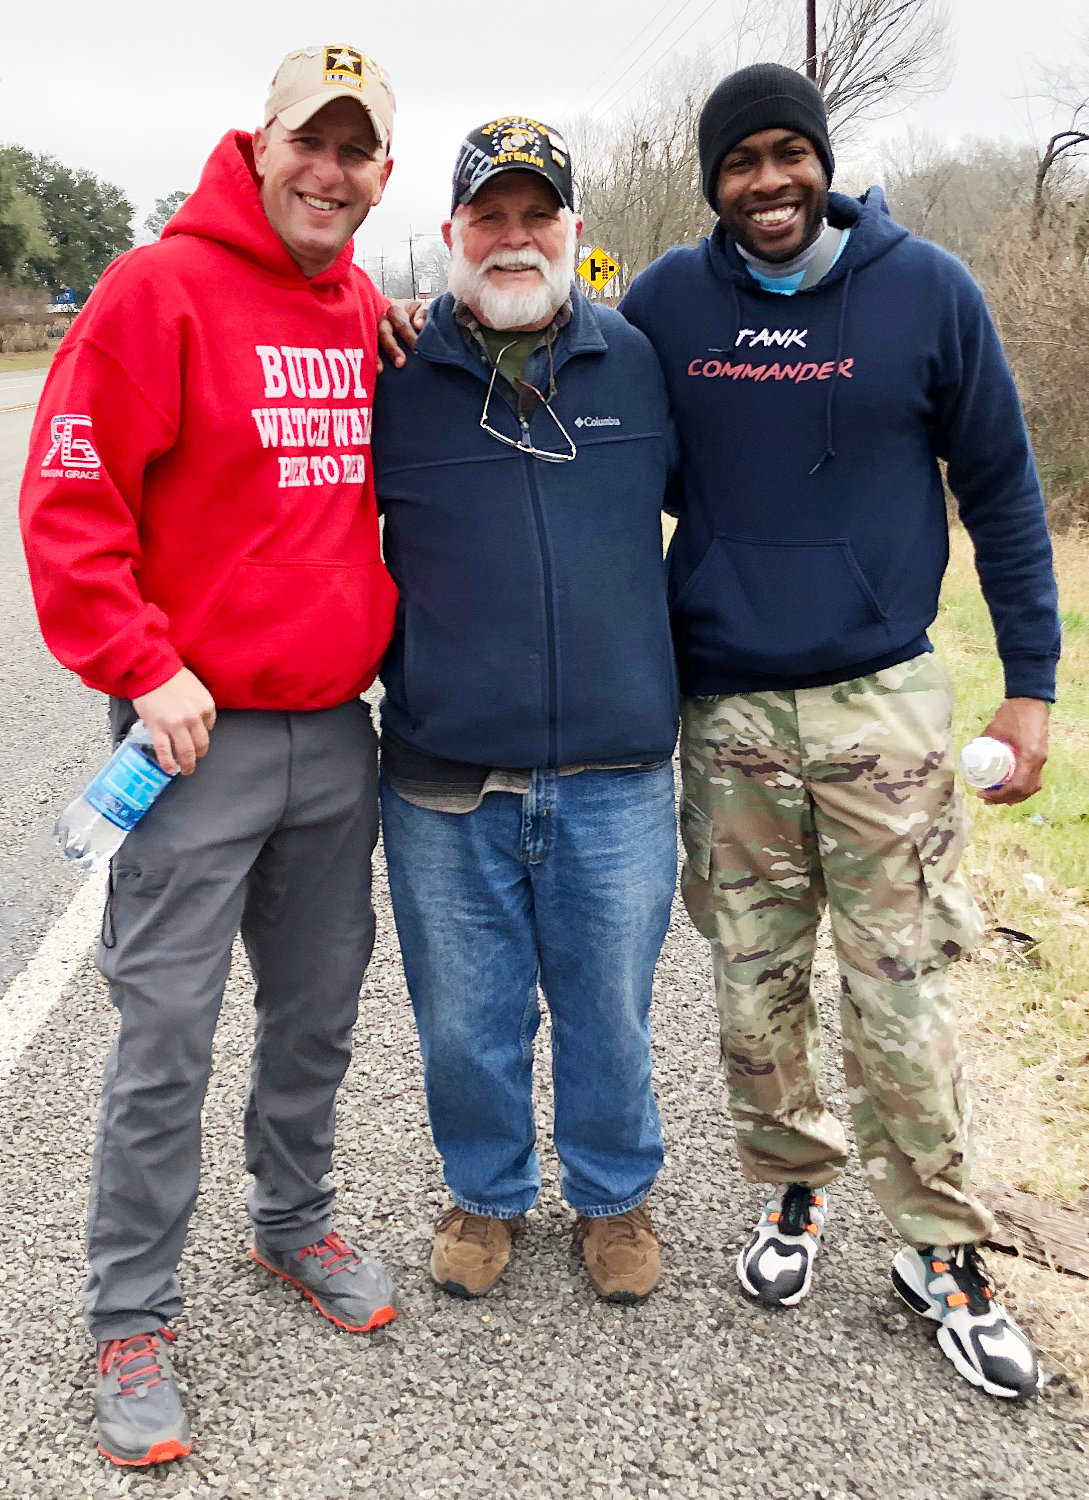 U.S. Marine Vietnam Veteran Jim Bailey joined John Ring and Jimmy Mathews of Buddy Watch Walk on their walk from Mineola to Grand Saline.